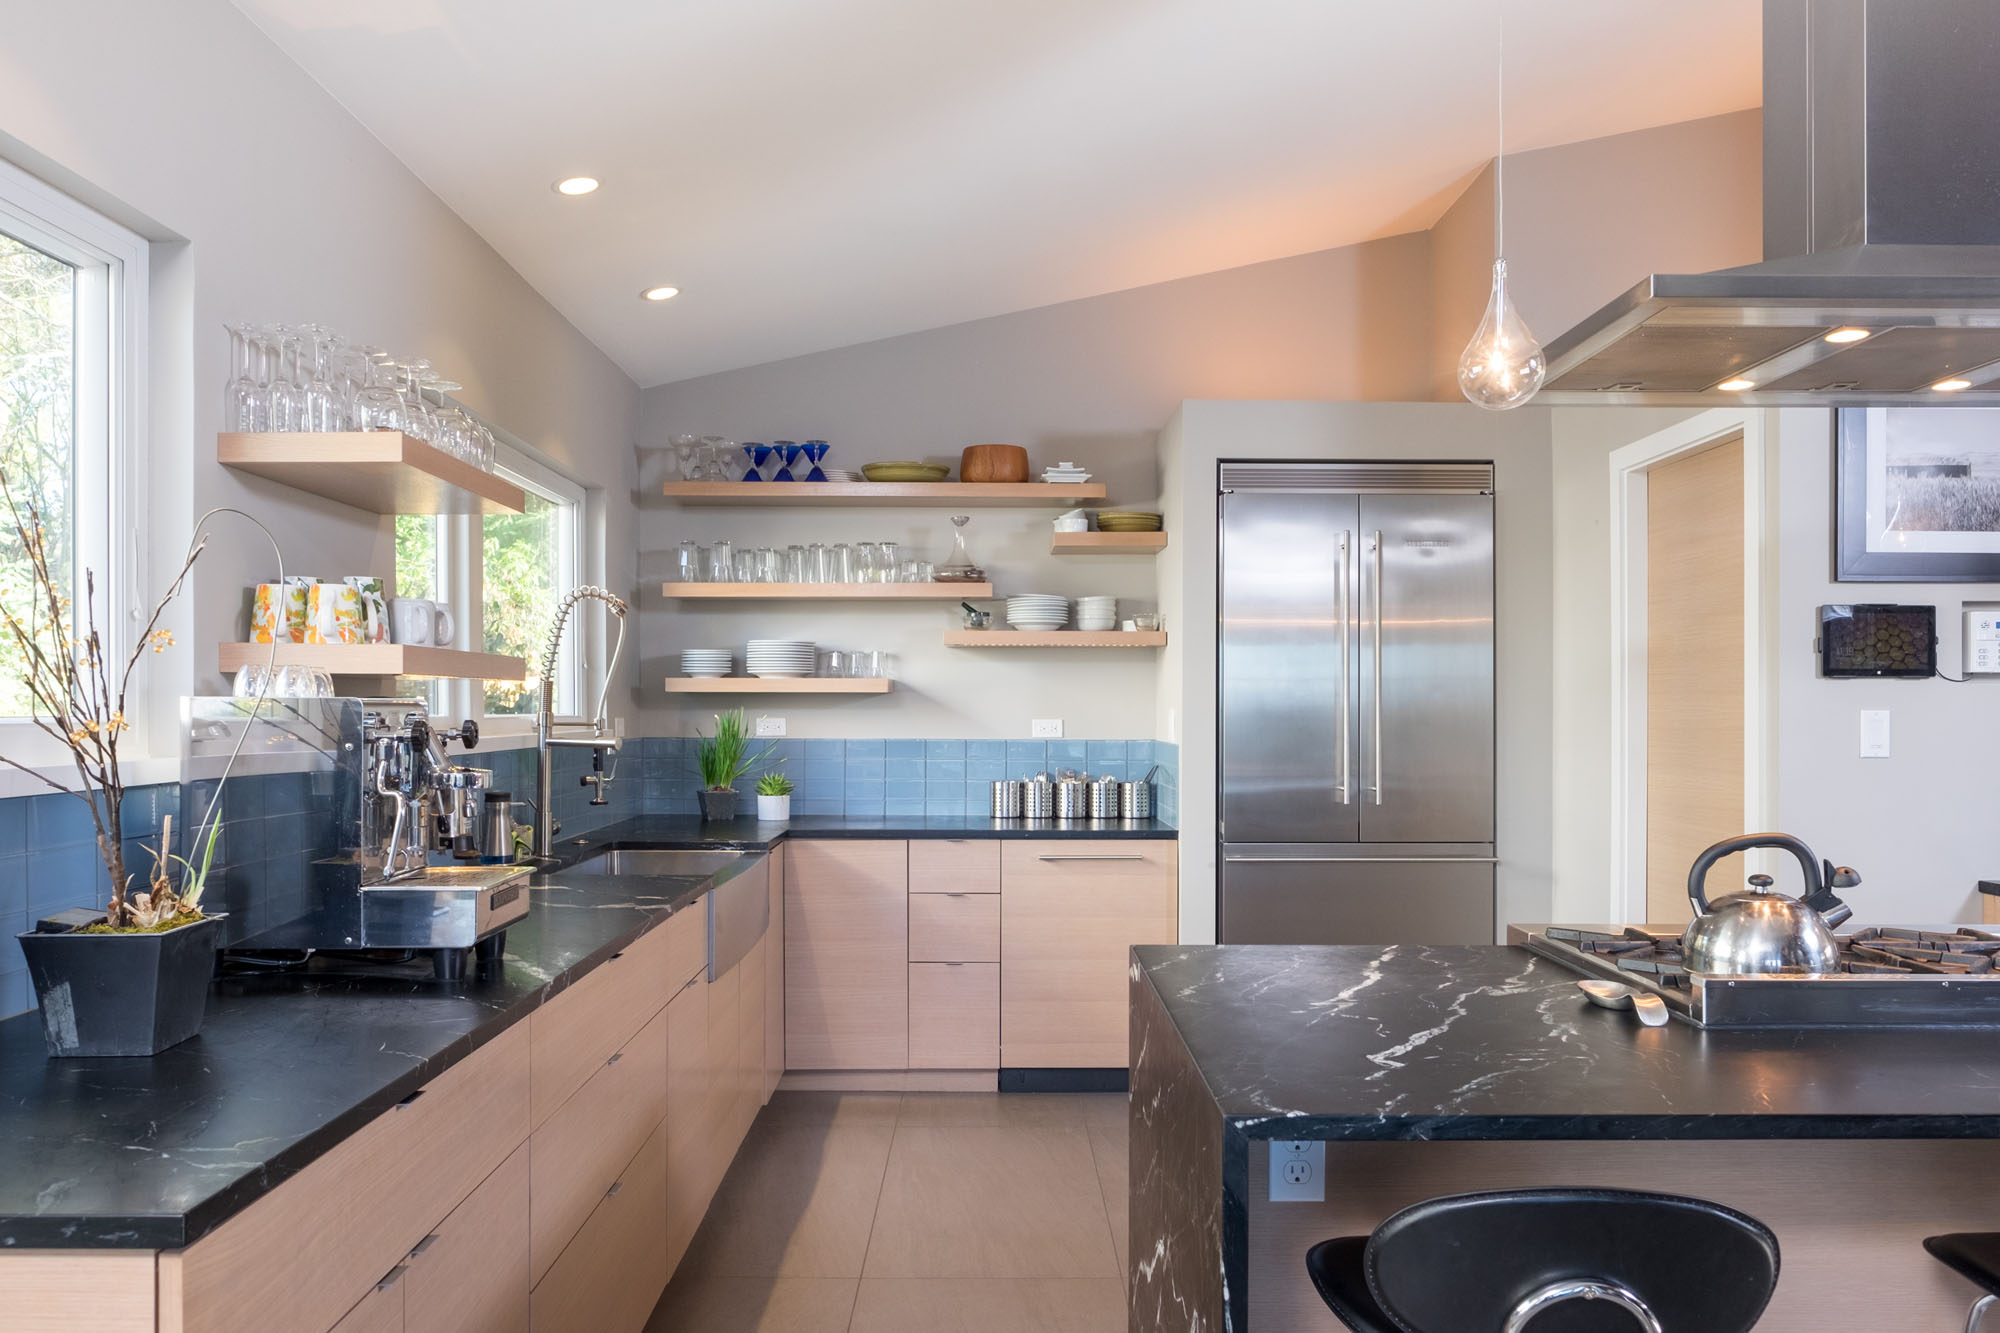 Sixth slide - Modern kitchen with soapstone counters and light wood and tile accents